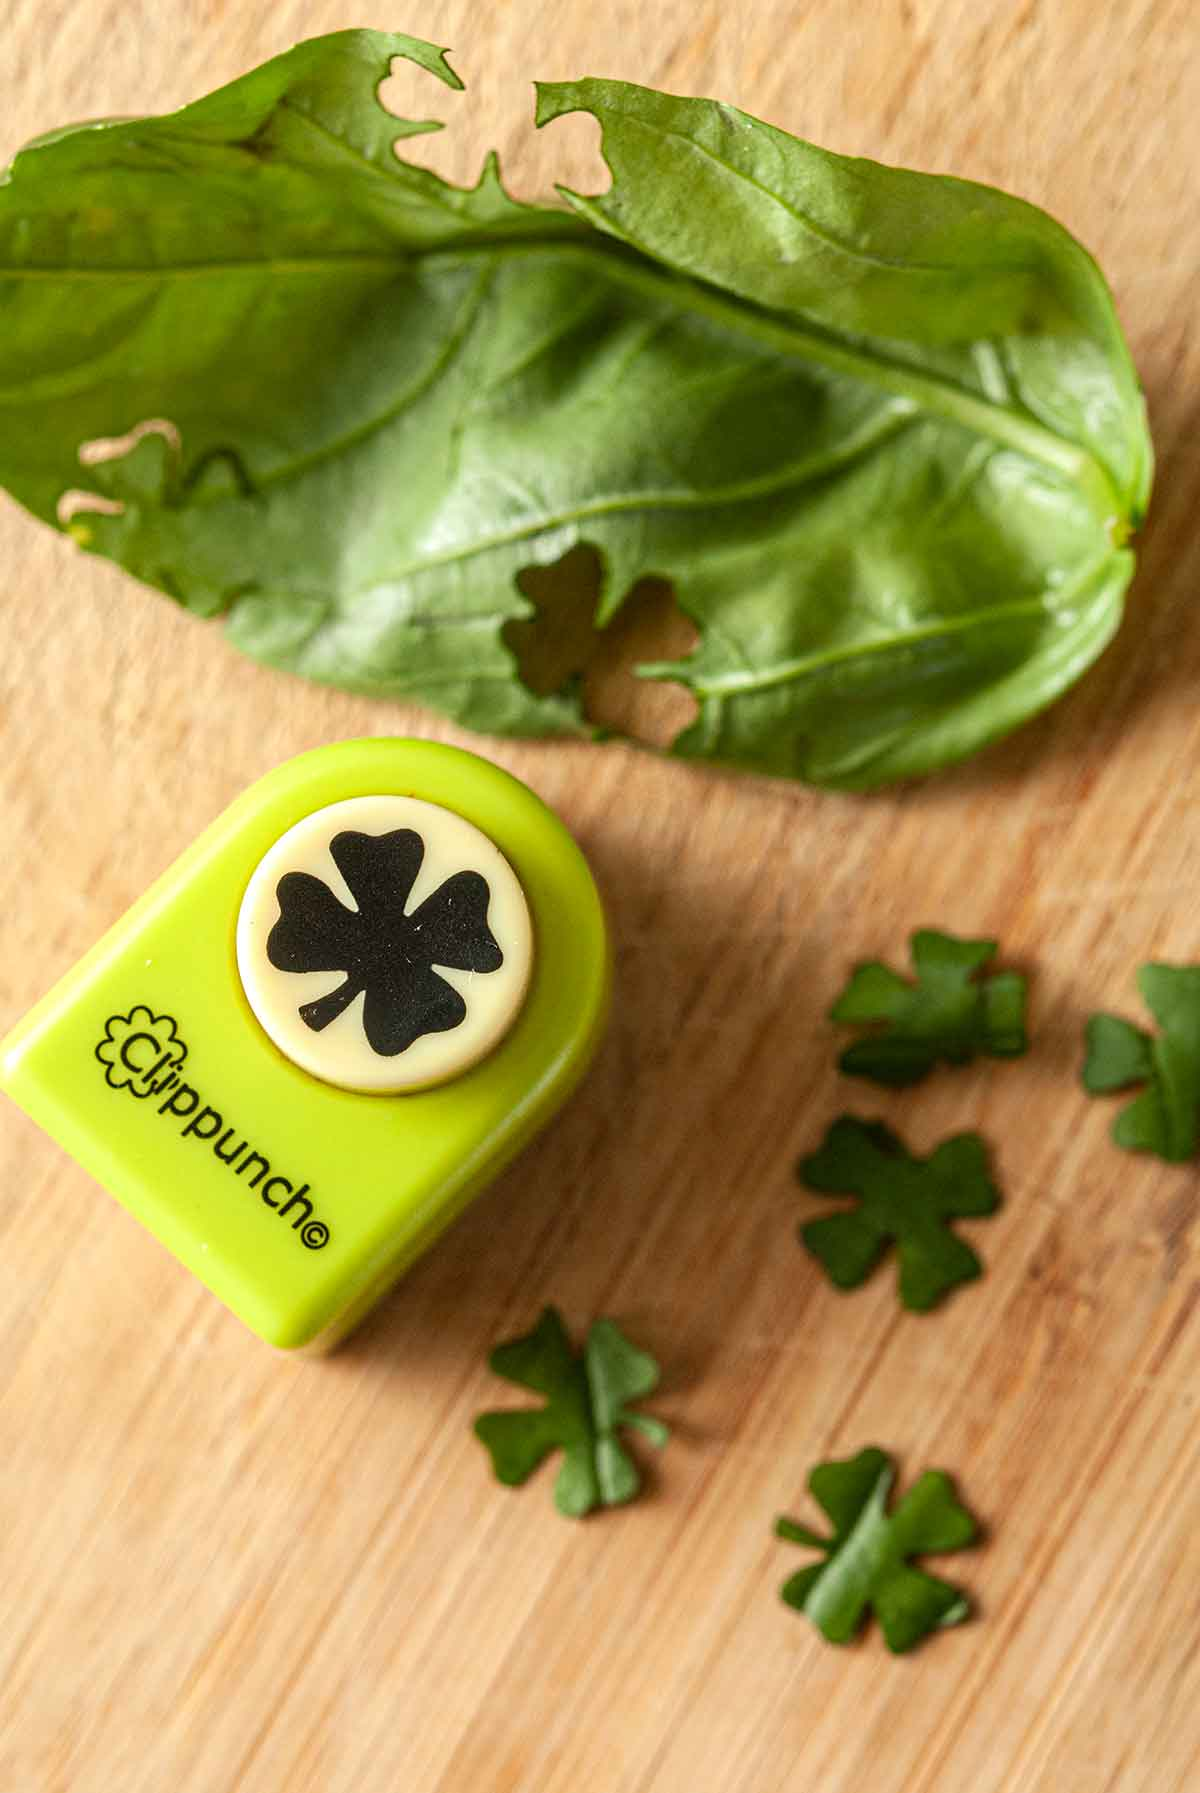 A clover paper punch on a cutting board beside a basil leaf and punched clovers.